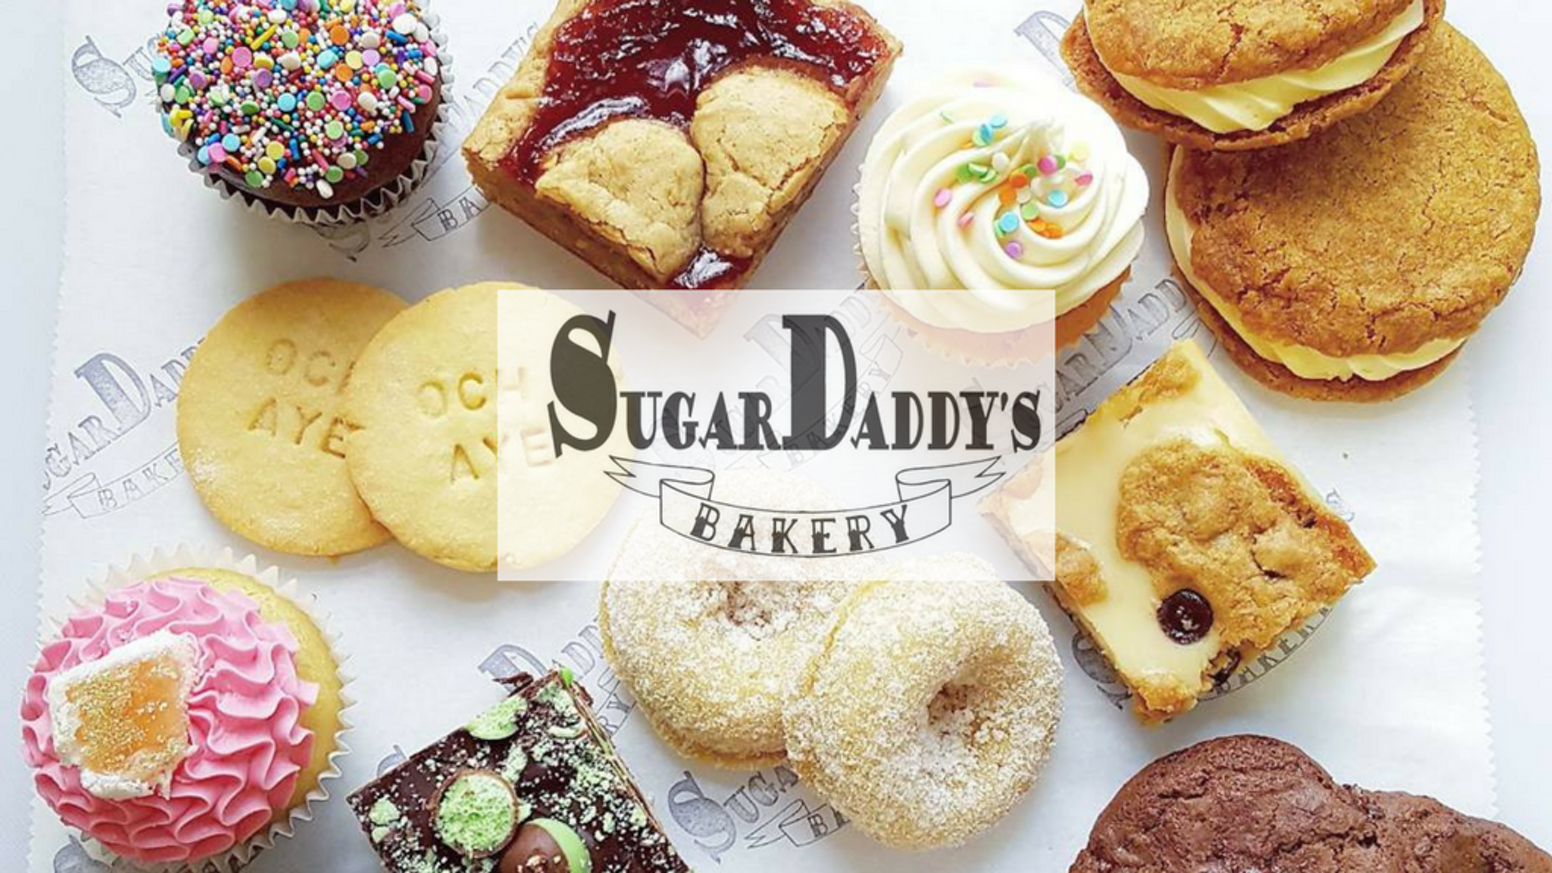 We've outgrown our wee bakery and need your help to set up bigger premises so we can bring YOU more awesome treats!